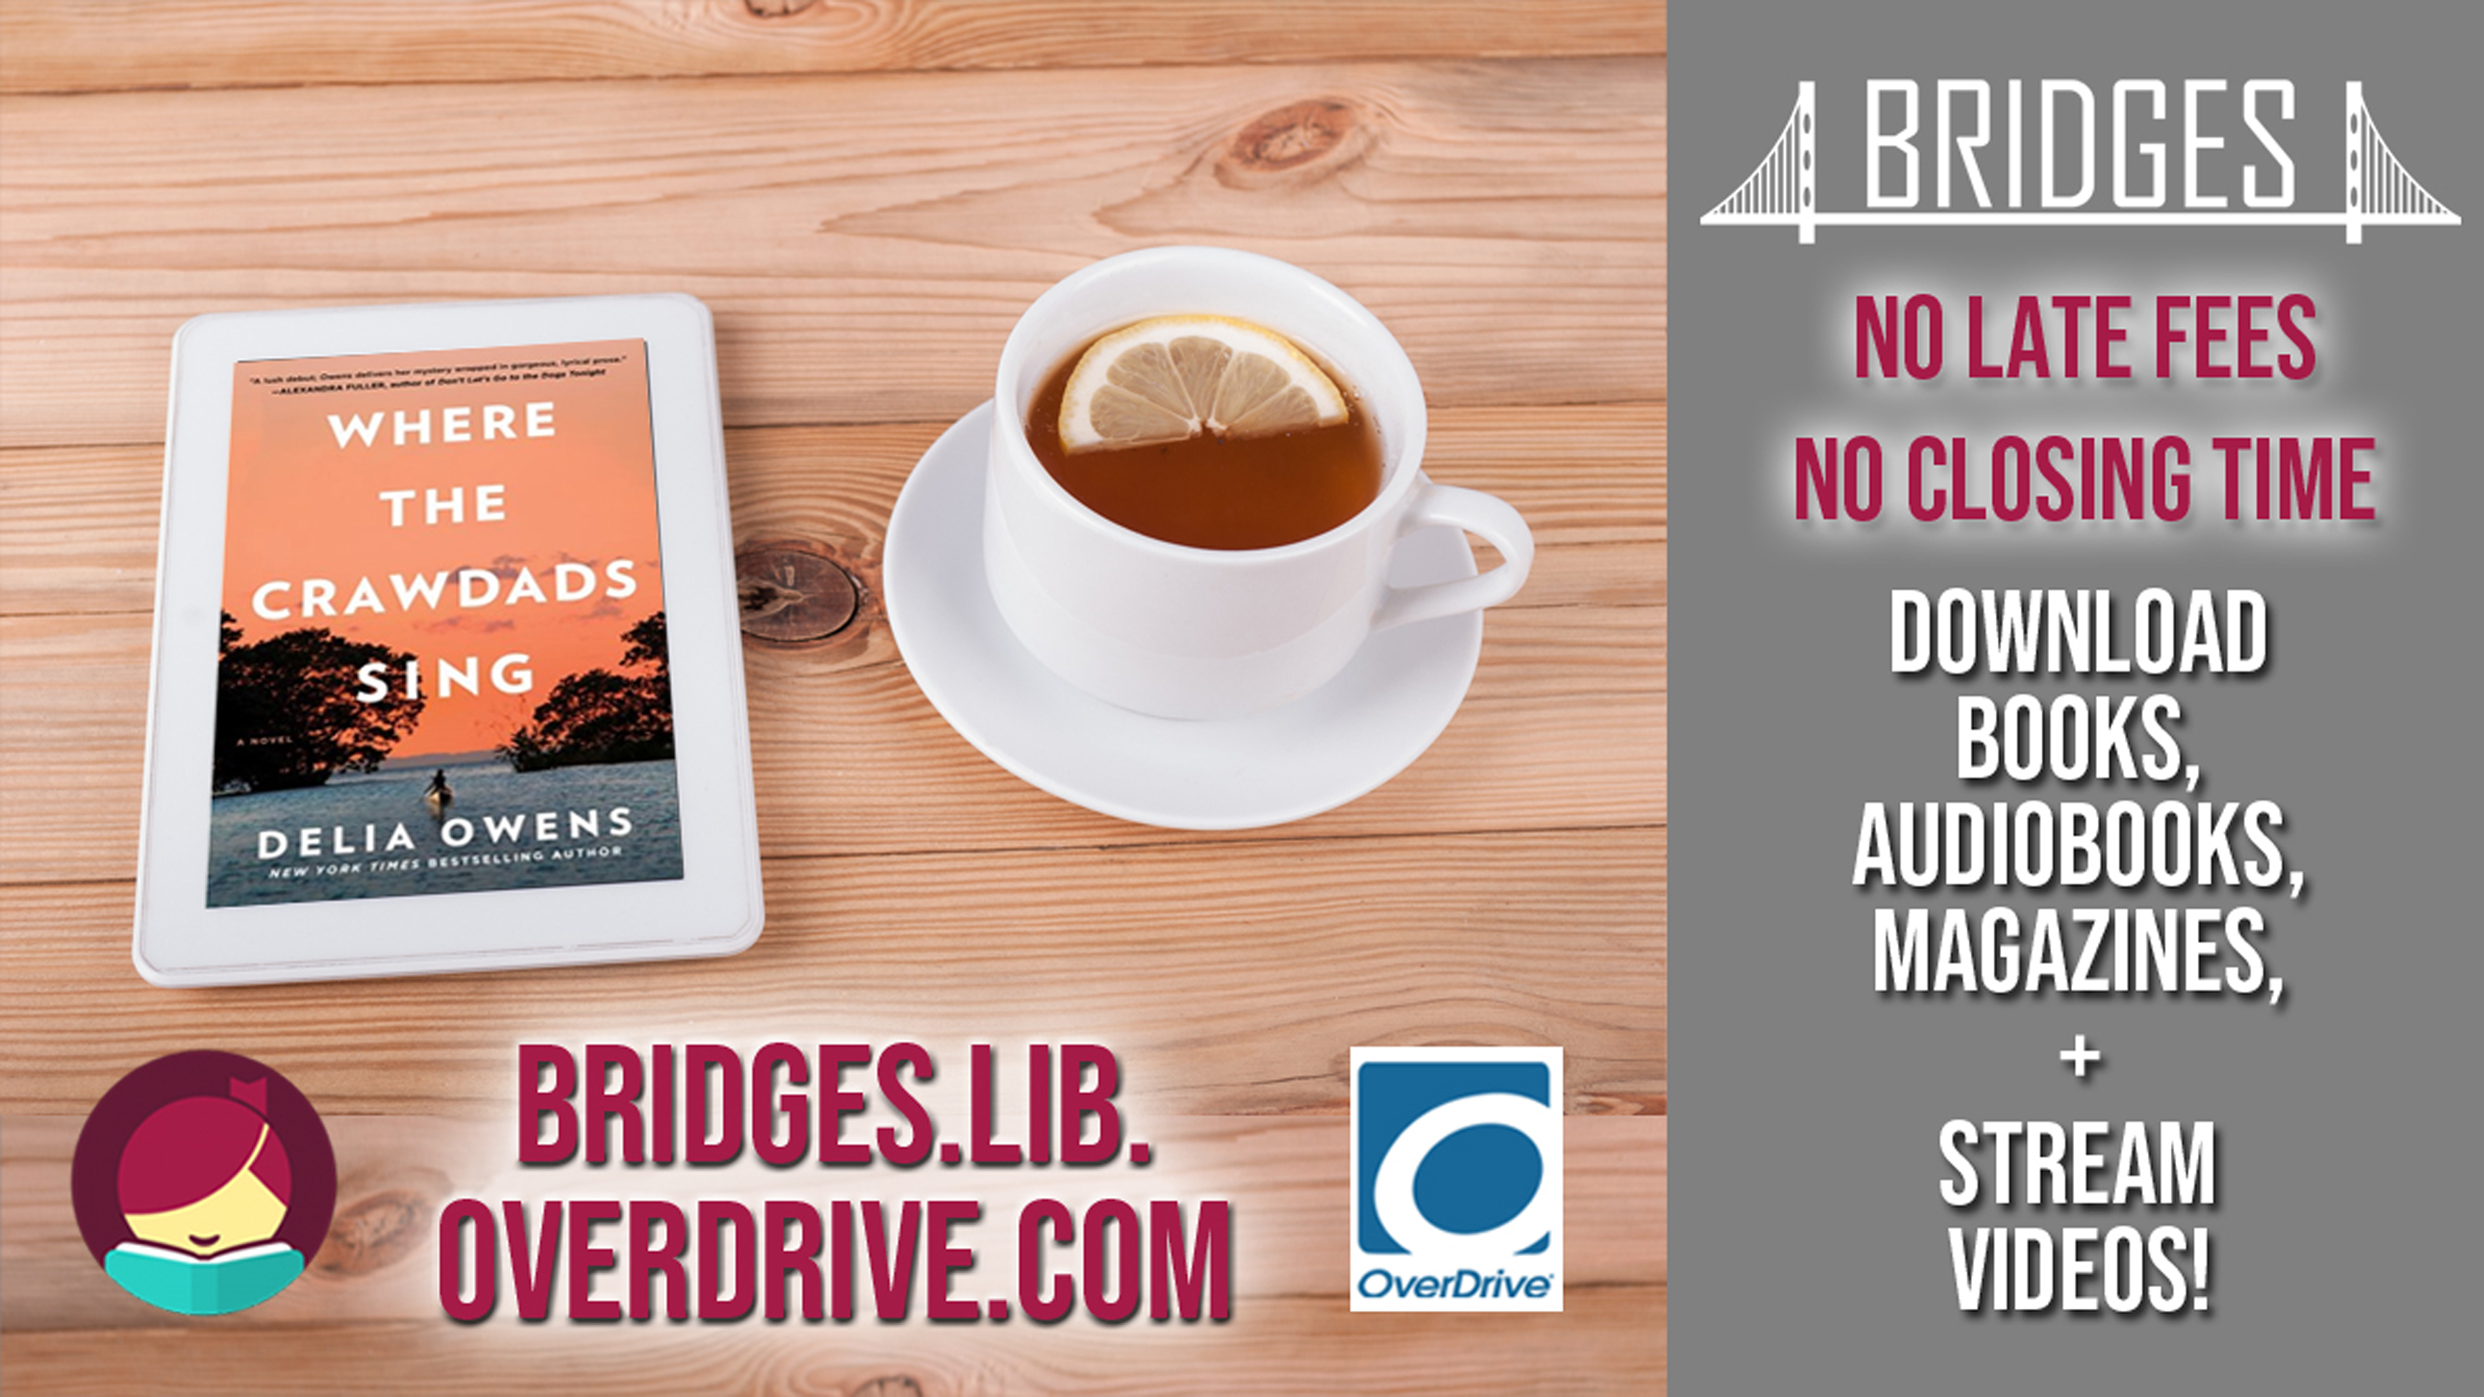 OverDrive ebooks & Audiobooks!